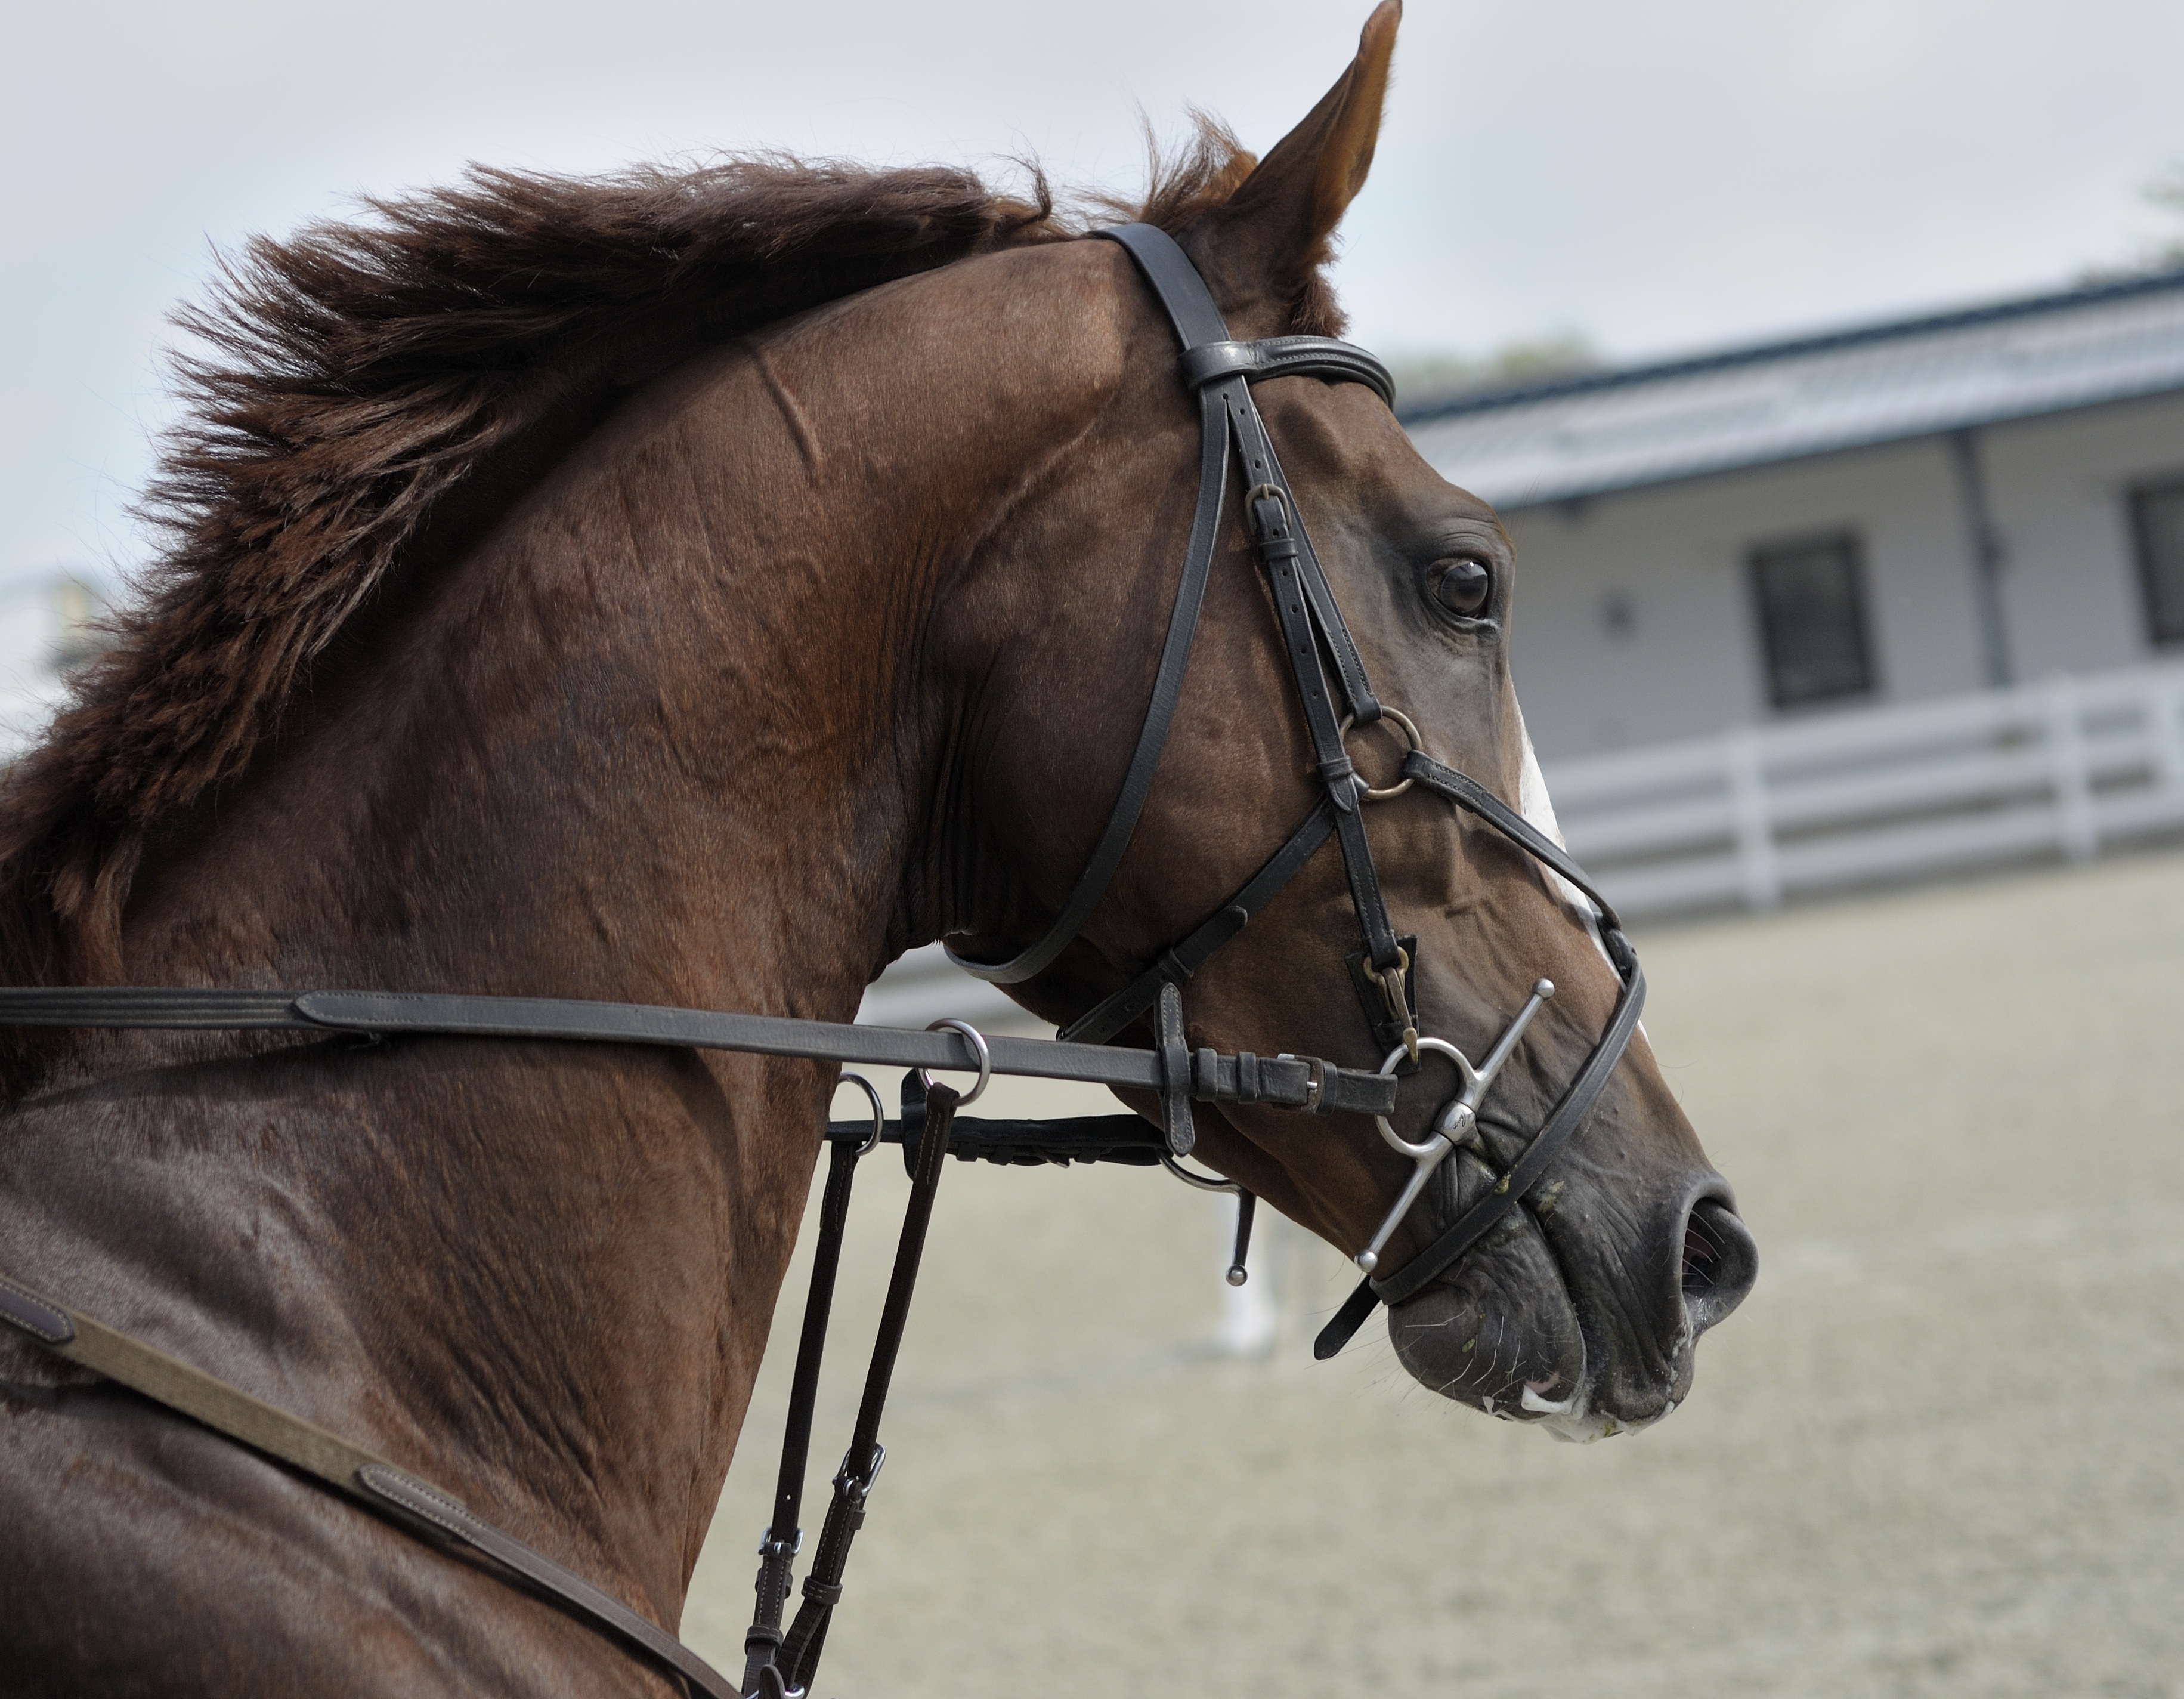 Horse at the Stable, Animal, Brown, Fast, Horse, HQ Photo